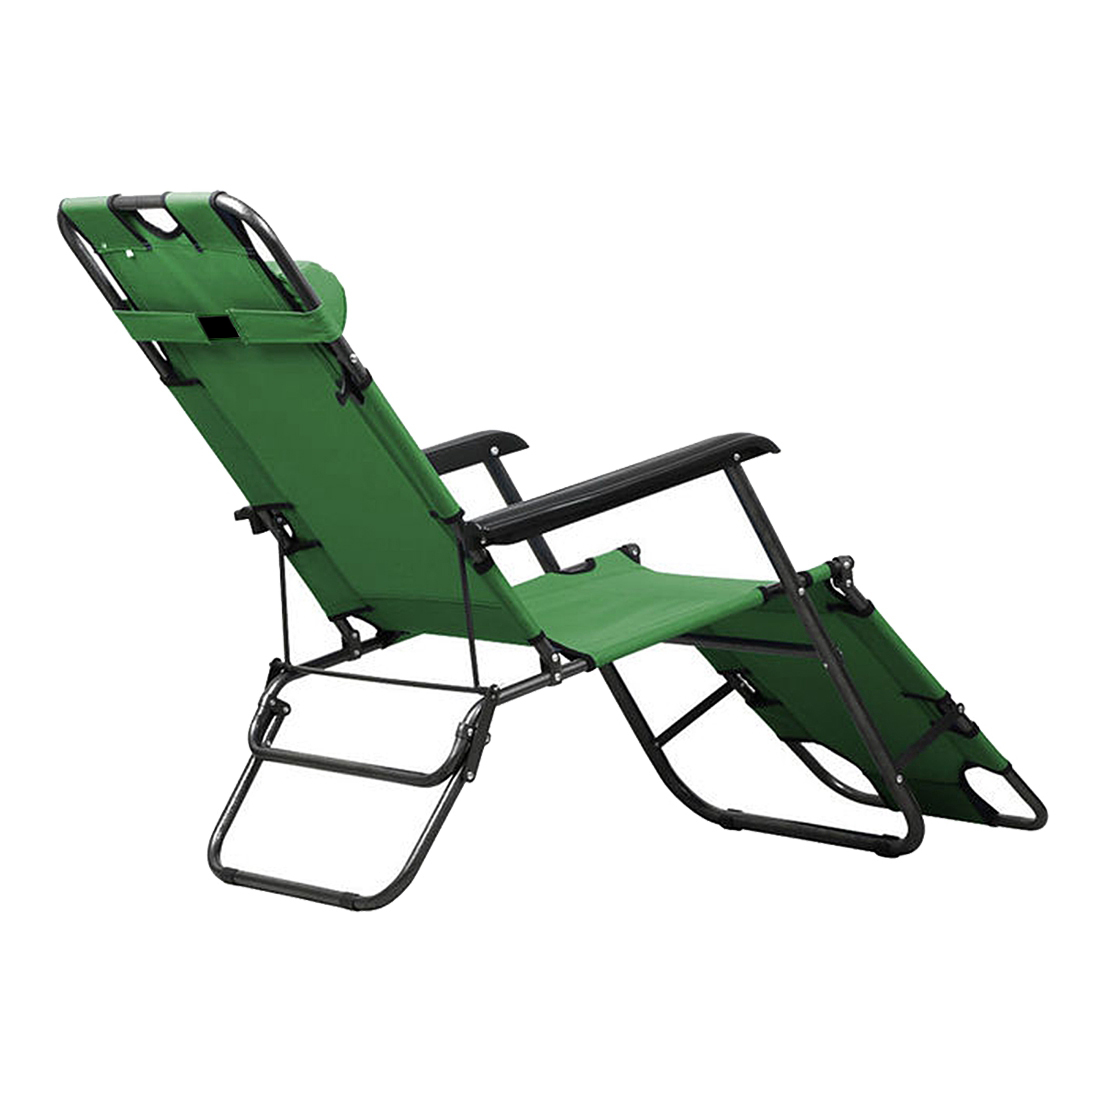 online buy wholesale patio lounge chair from china patio lounge chair